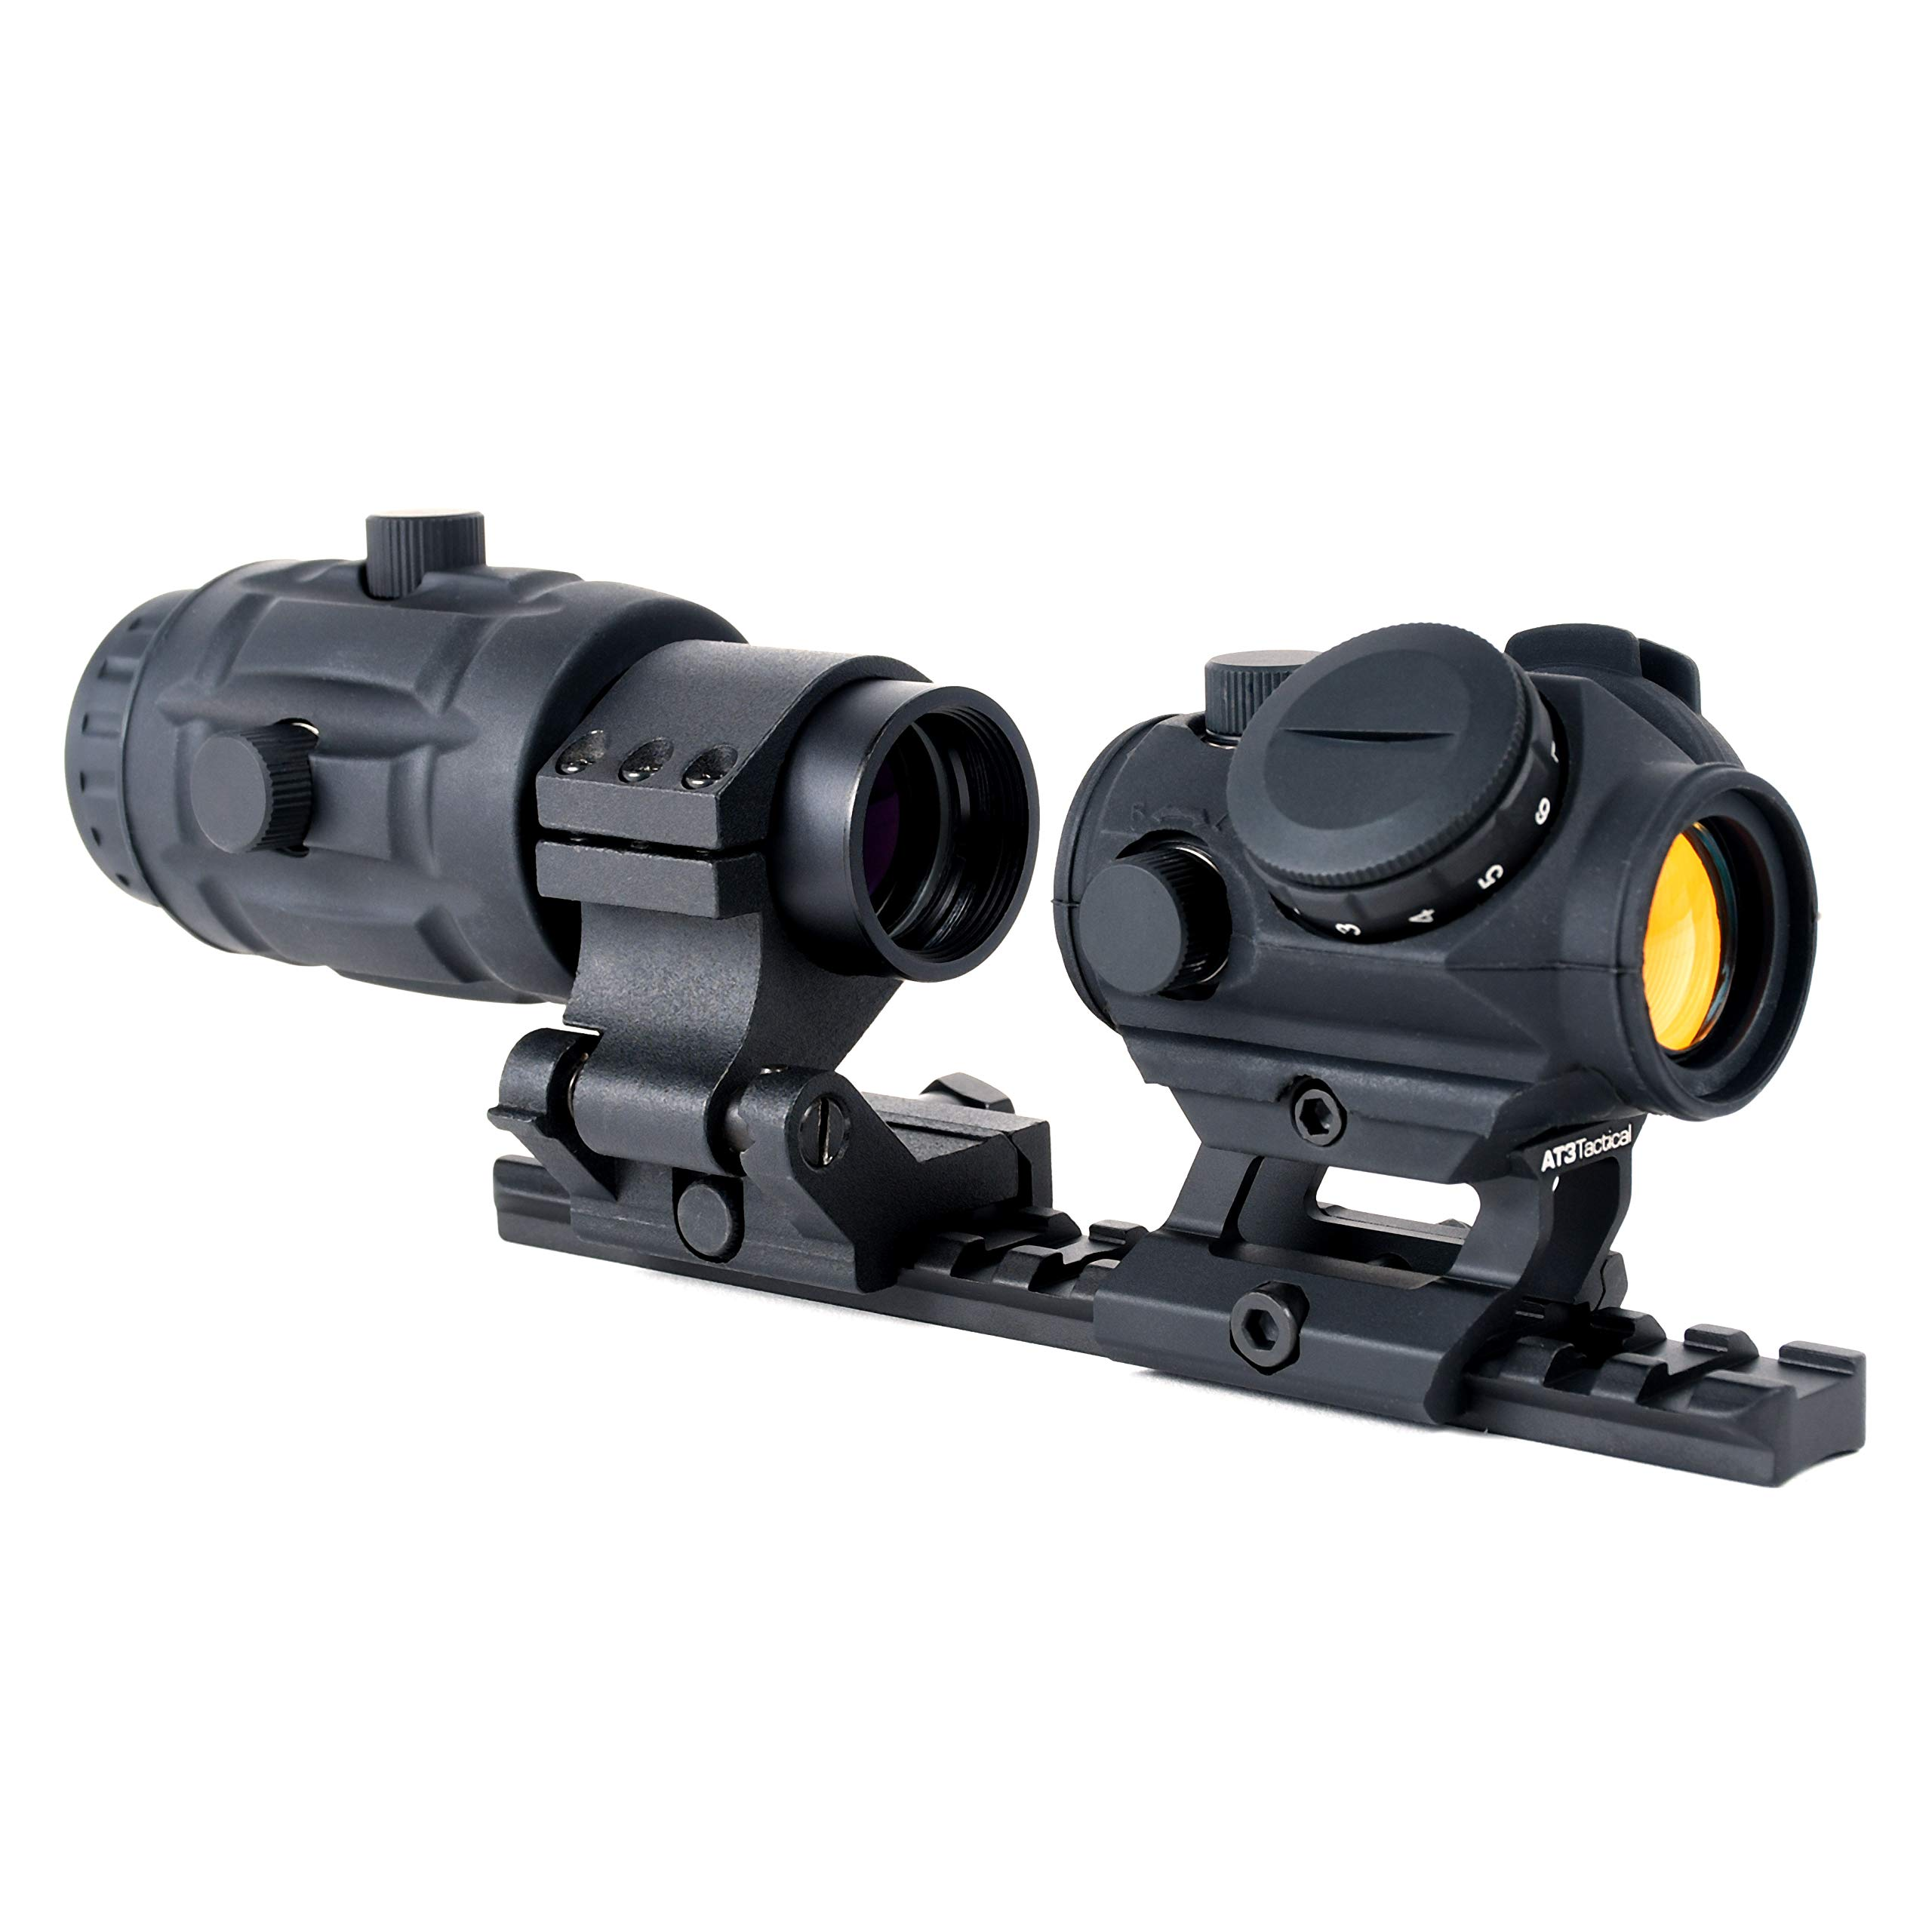 AT3 Tactical RD-50 Red Dot Sight + 3X RRDM Red Dot Magnifier Combo Kit by AT3 Tactical (Image #2)